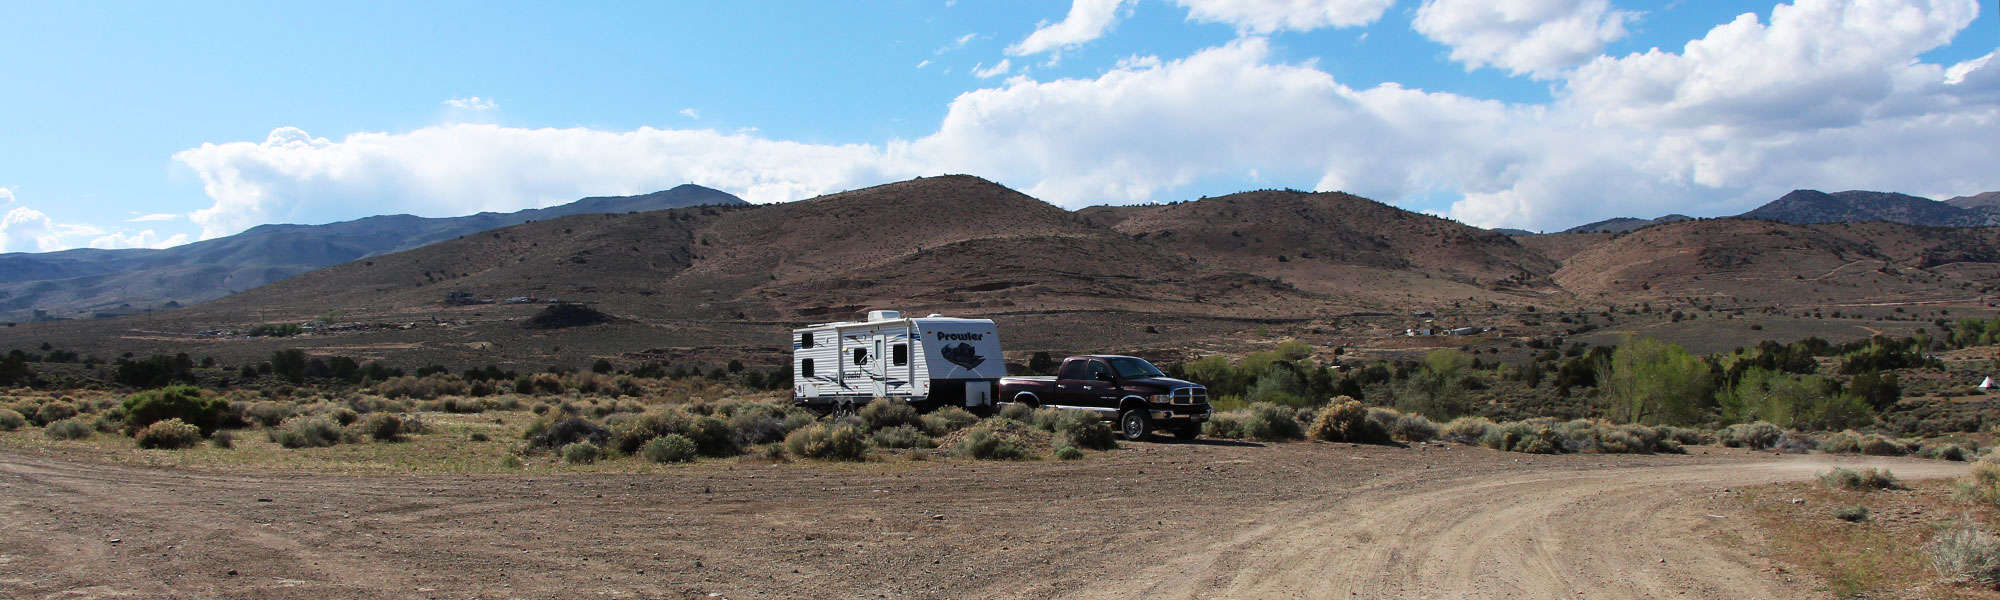 dayton-virginia-city-blm-nevada-camping-review-info